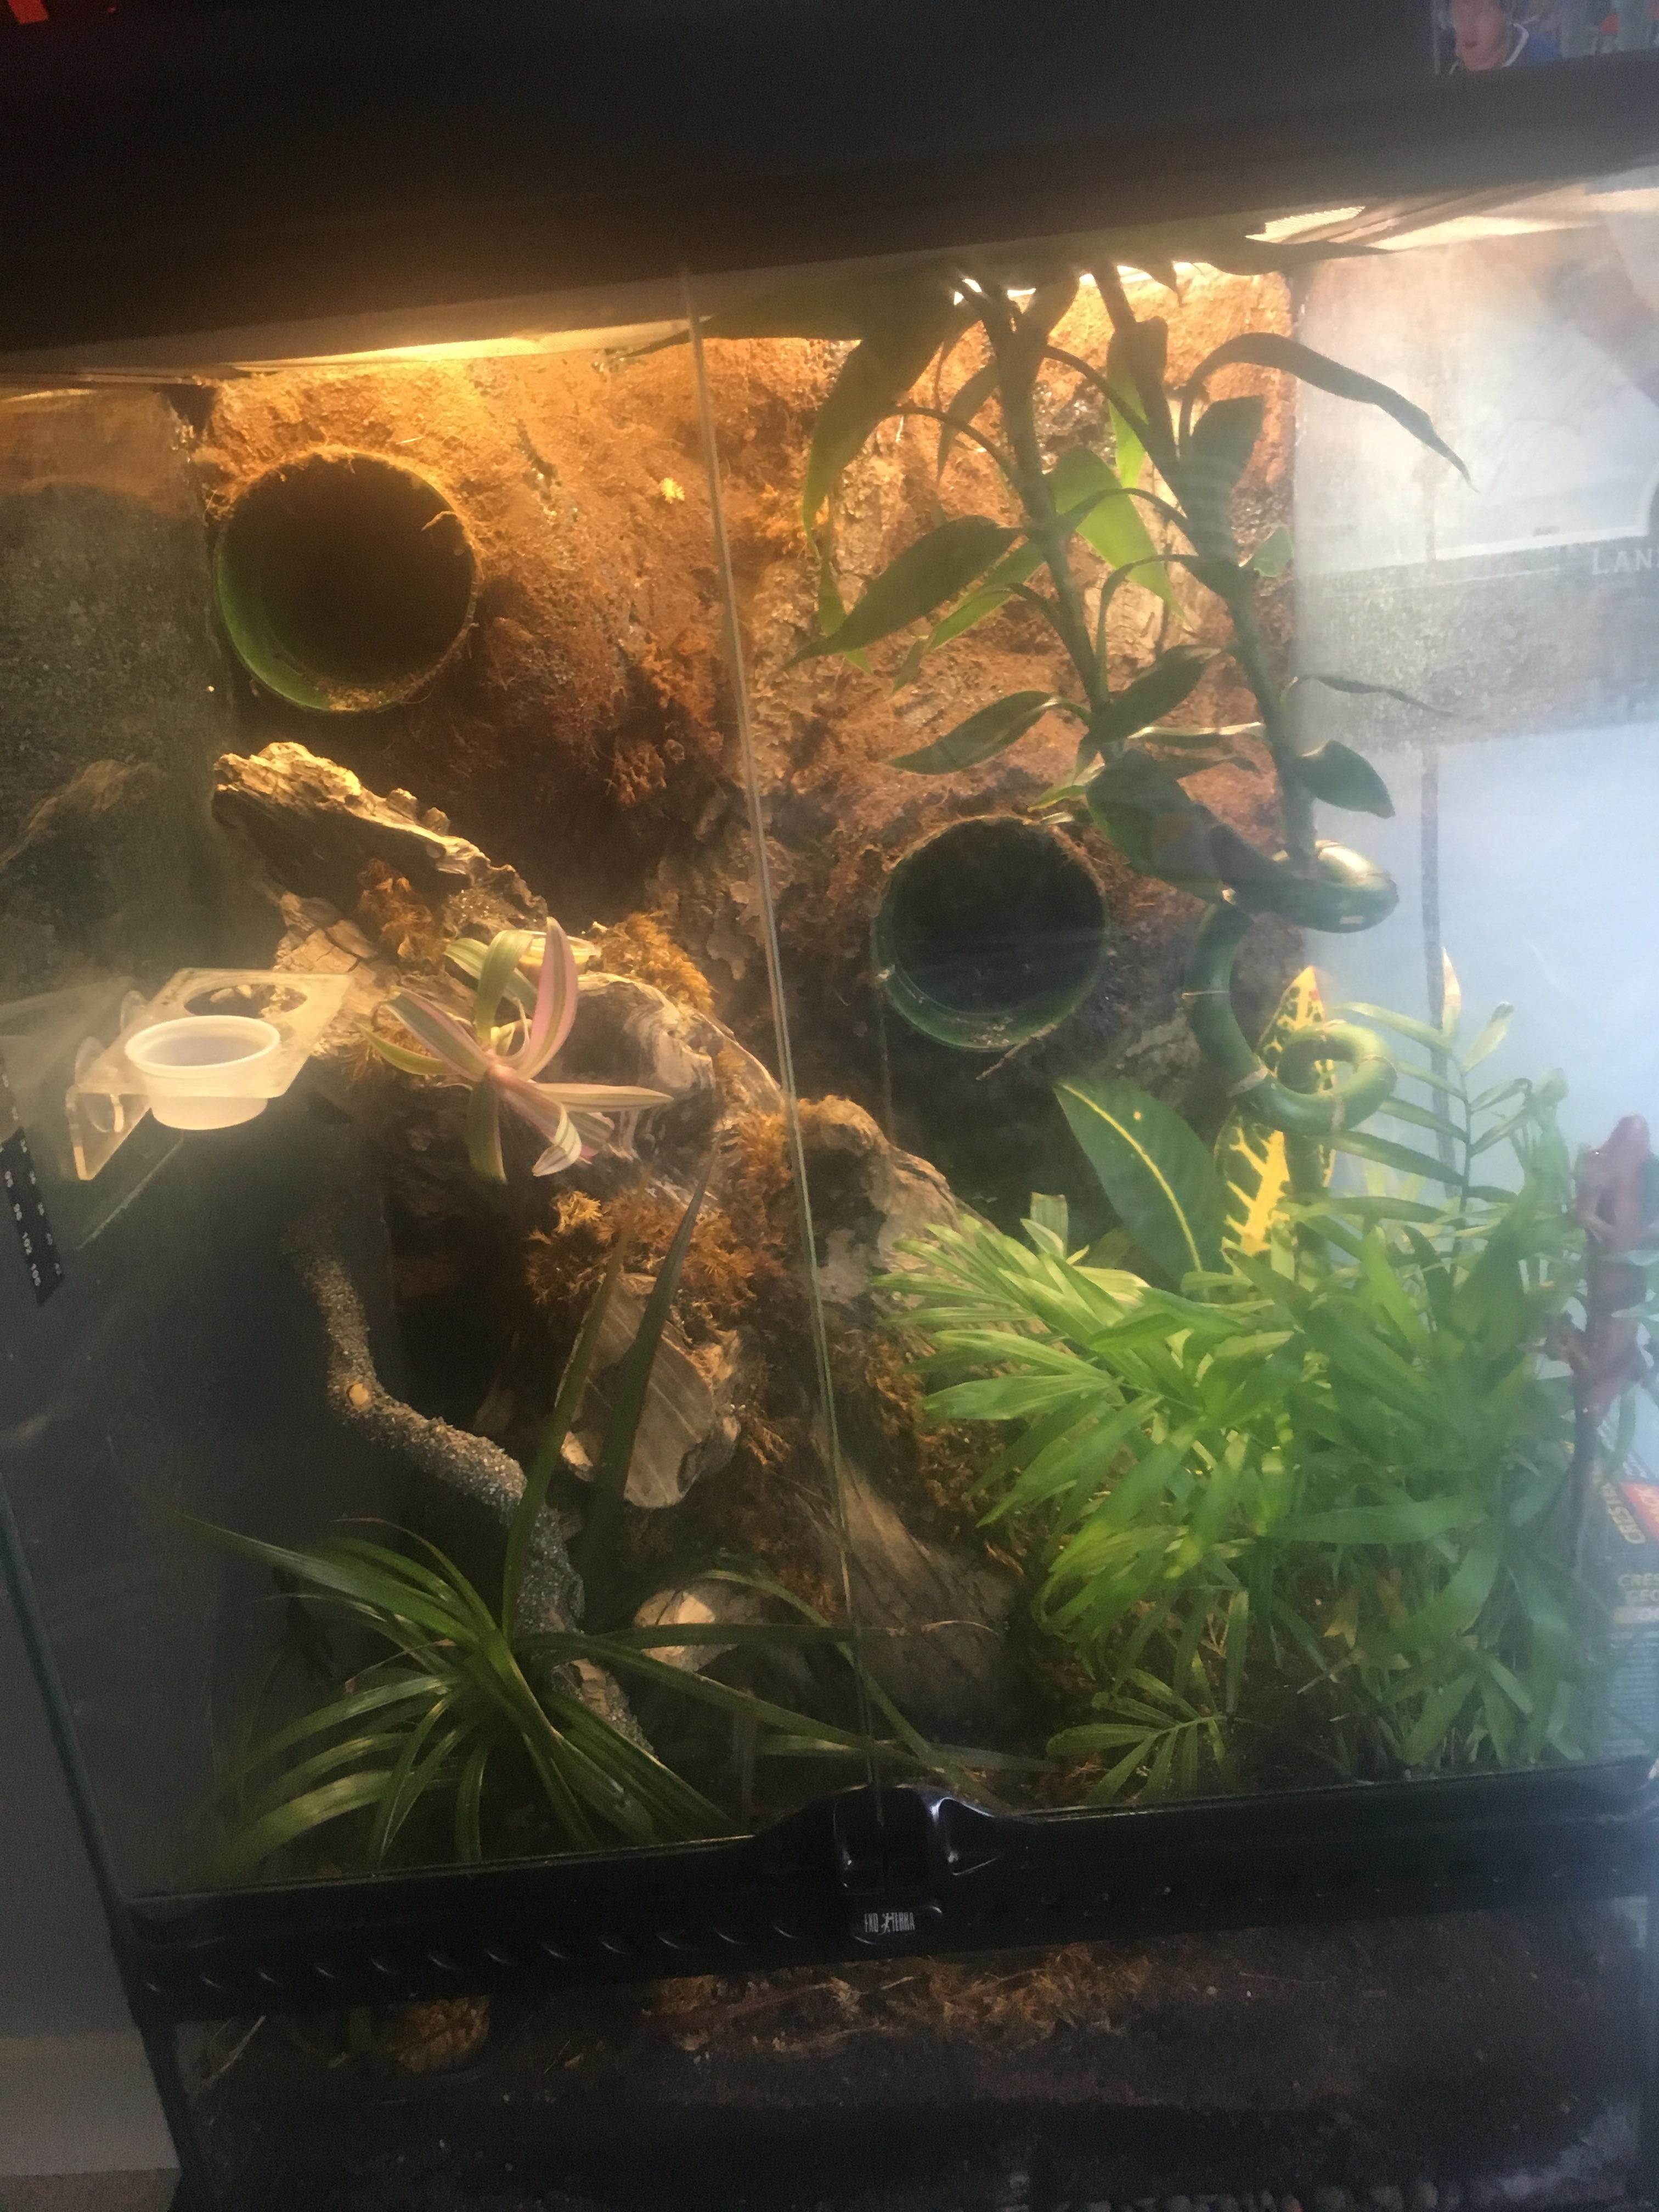 bought this crested gecko setup